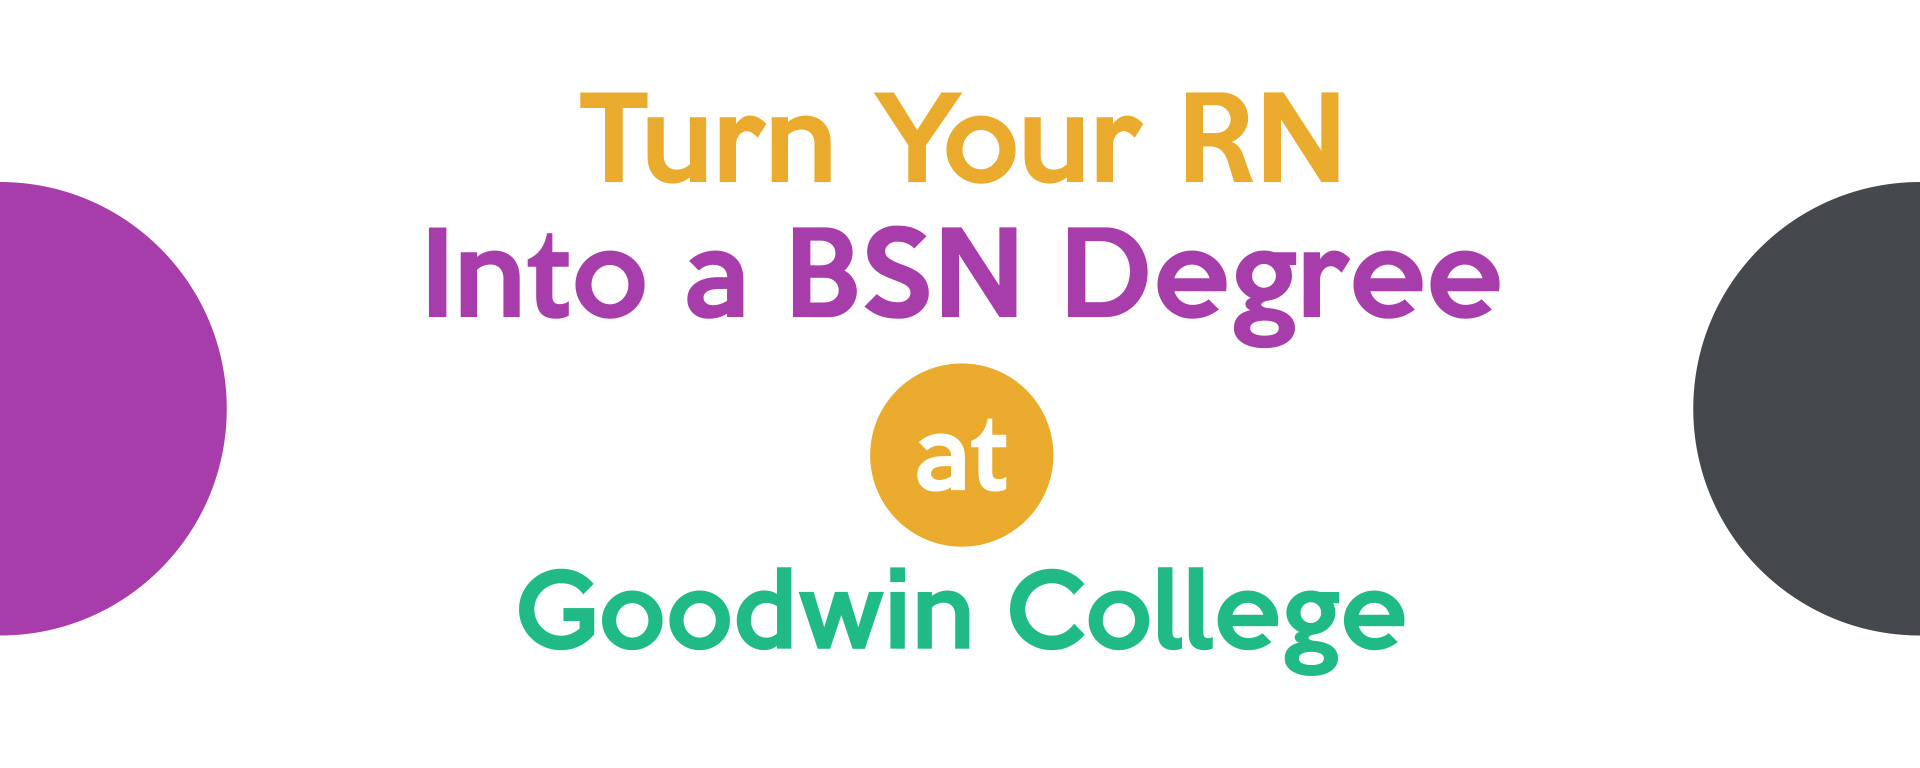 Turn Your Rn Into A Bsn Degree Goodwin College